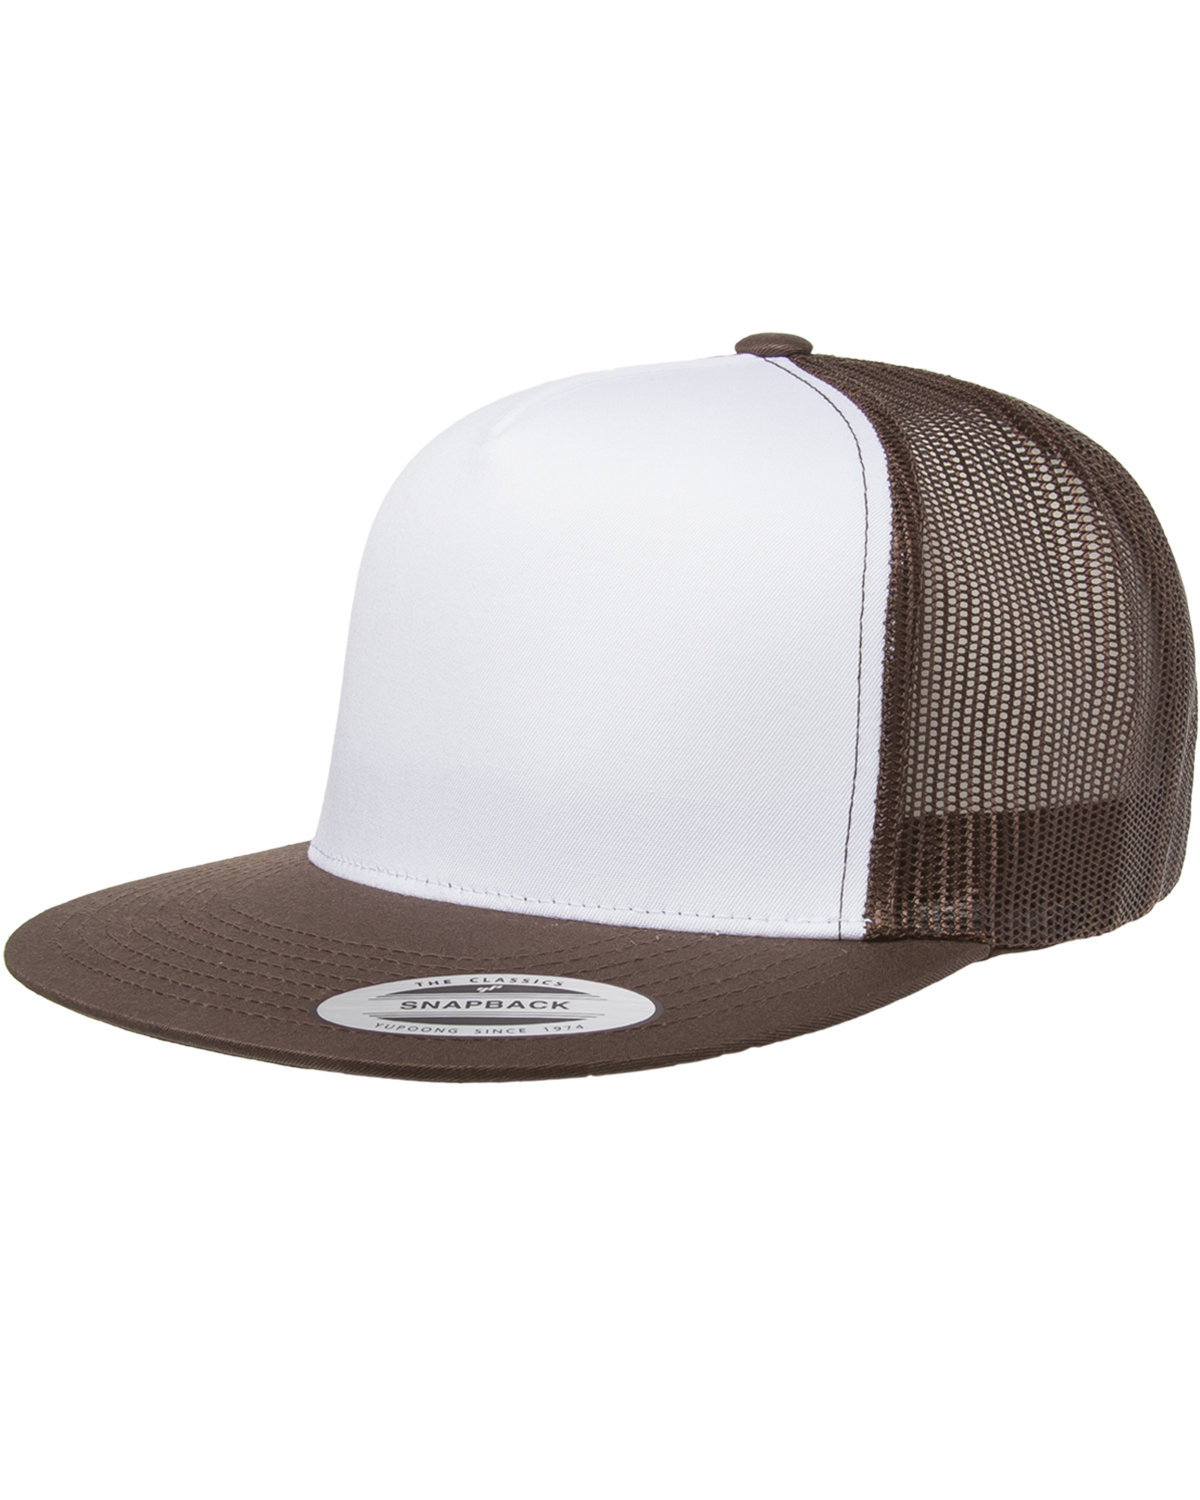 Yupoong Adult Classic Trucker with White Front Panel Cap BROWN/ WHT/ BRWN